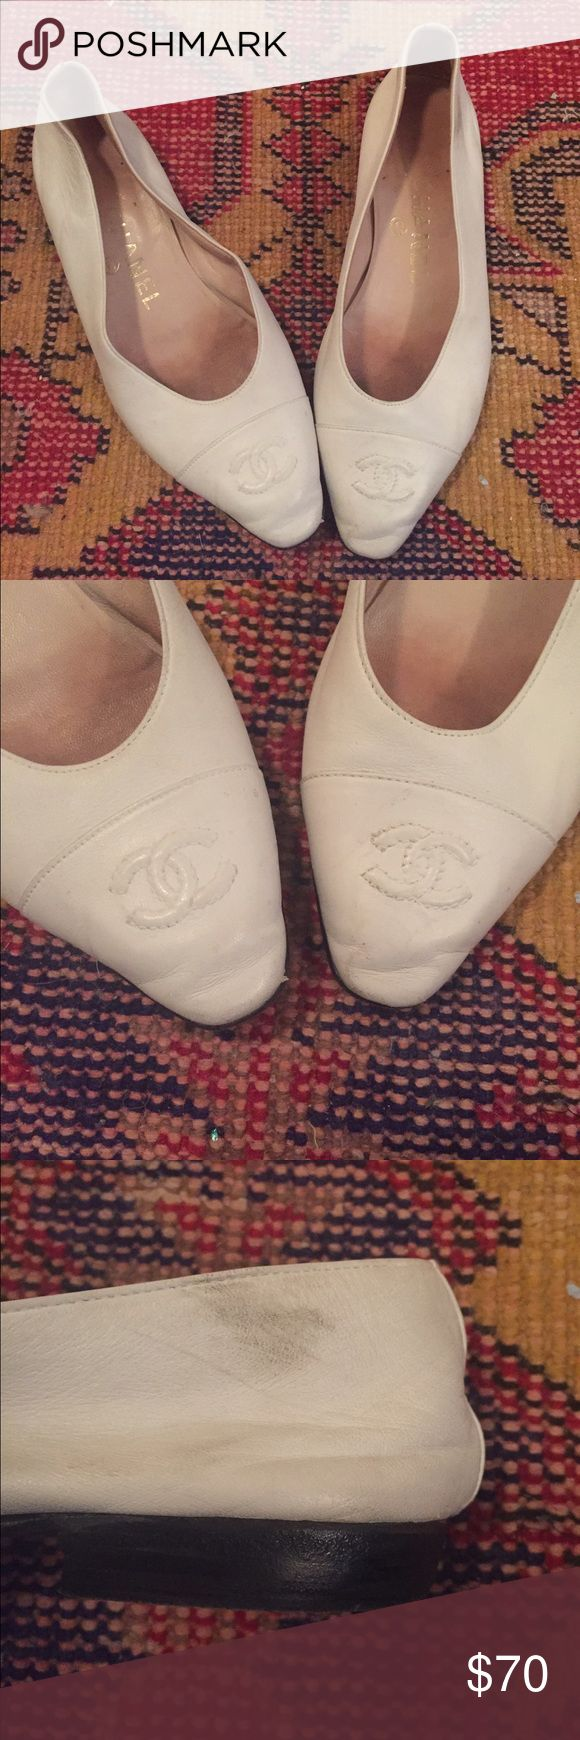 Chanel Flats Soft white leather Chanel flat. Small scuff, could possible be removed with the right white shoe polish. Chanel Shoes Flats & Loafers